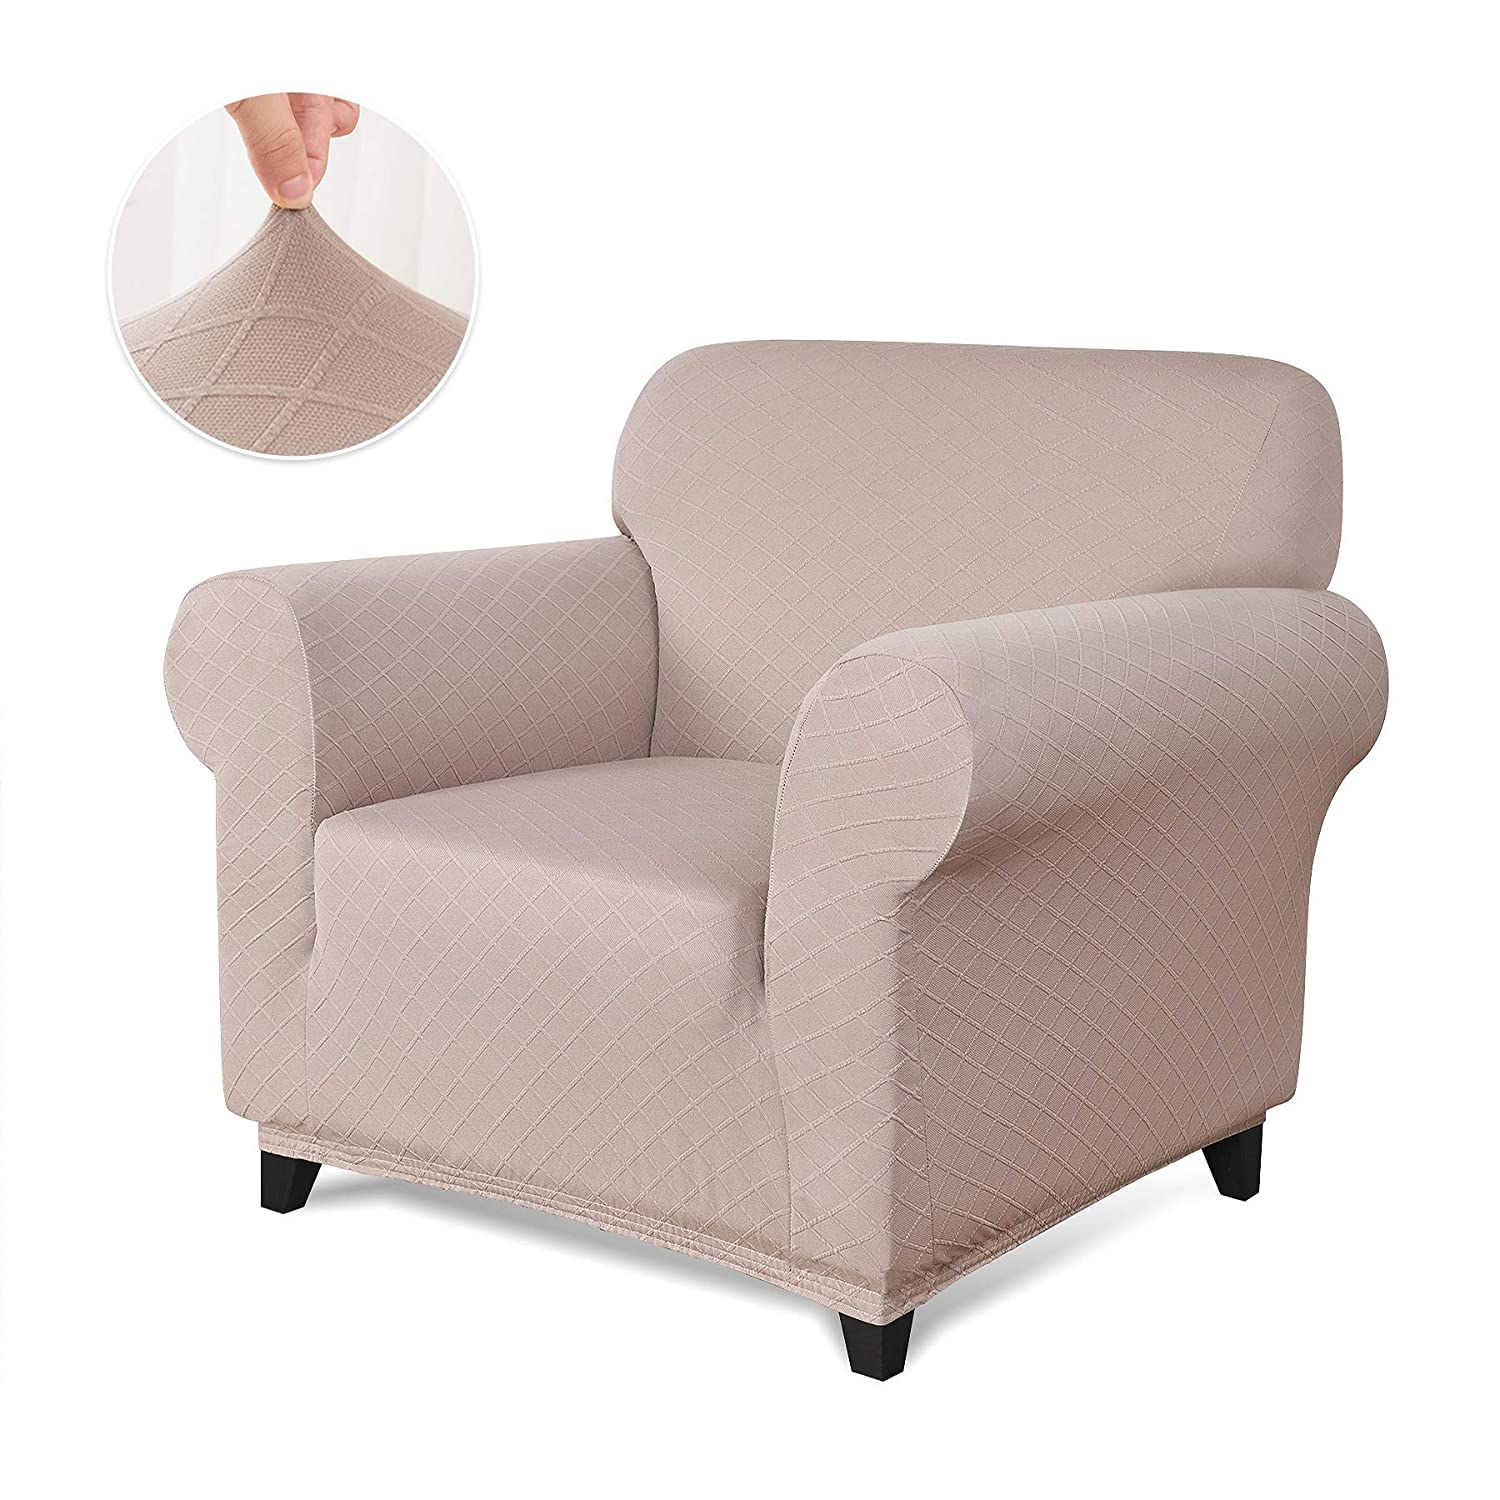 Chair Chocolate Chun Yi 1 Piece Stretch Polyester And Spandex Rhombus Jacquard Sofa Armchair Slipcovers Durable